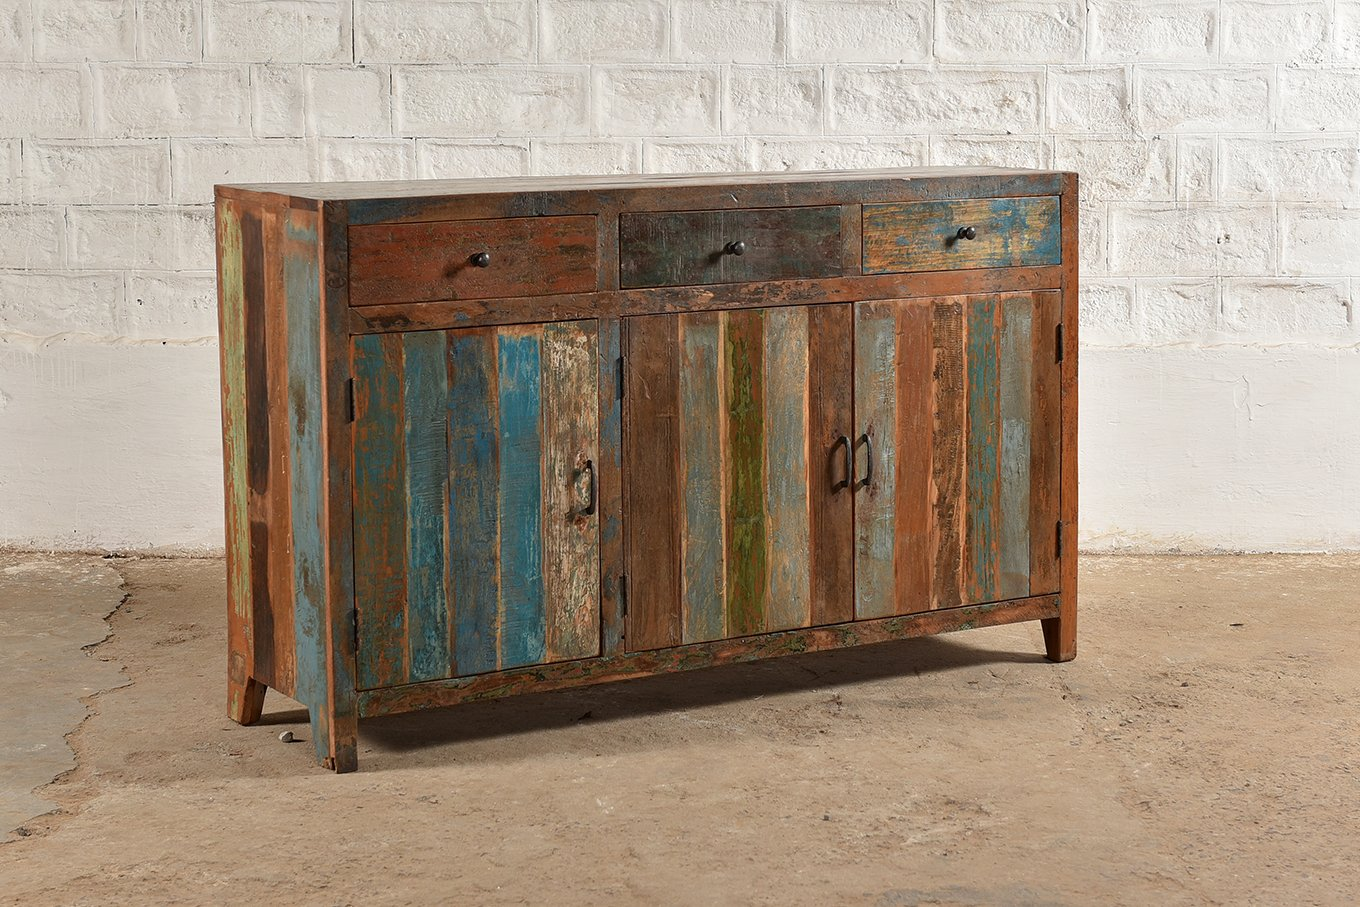 Colourful, 3-door/ 3-drawer sideboard made from reclaimed wood